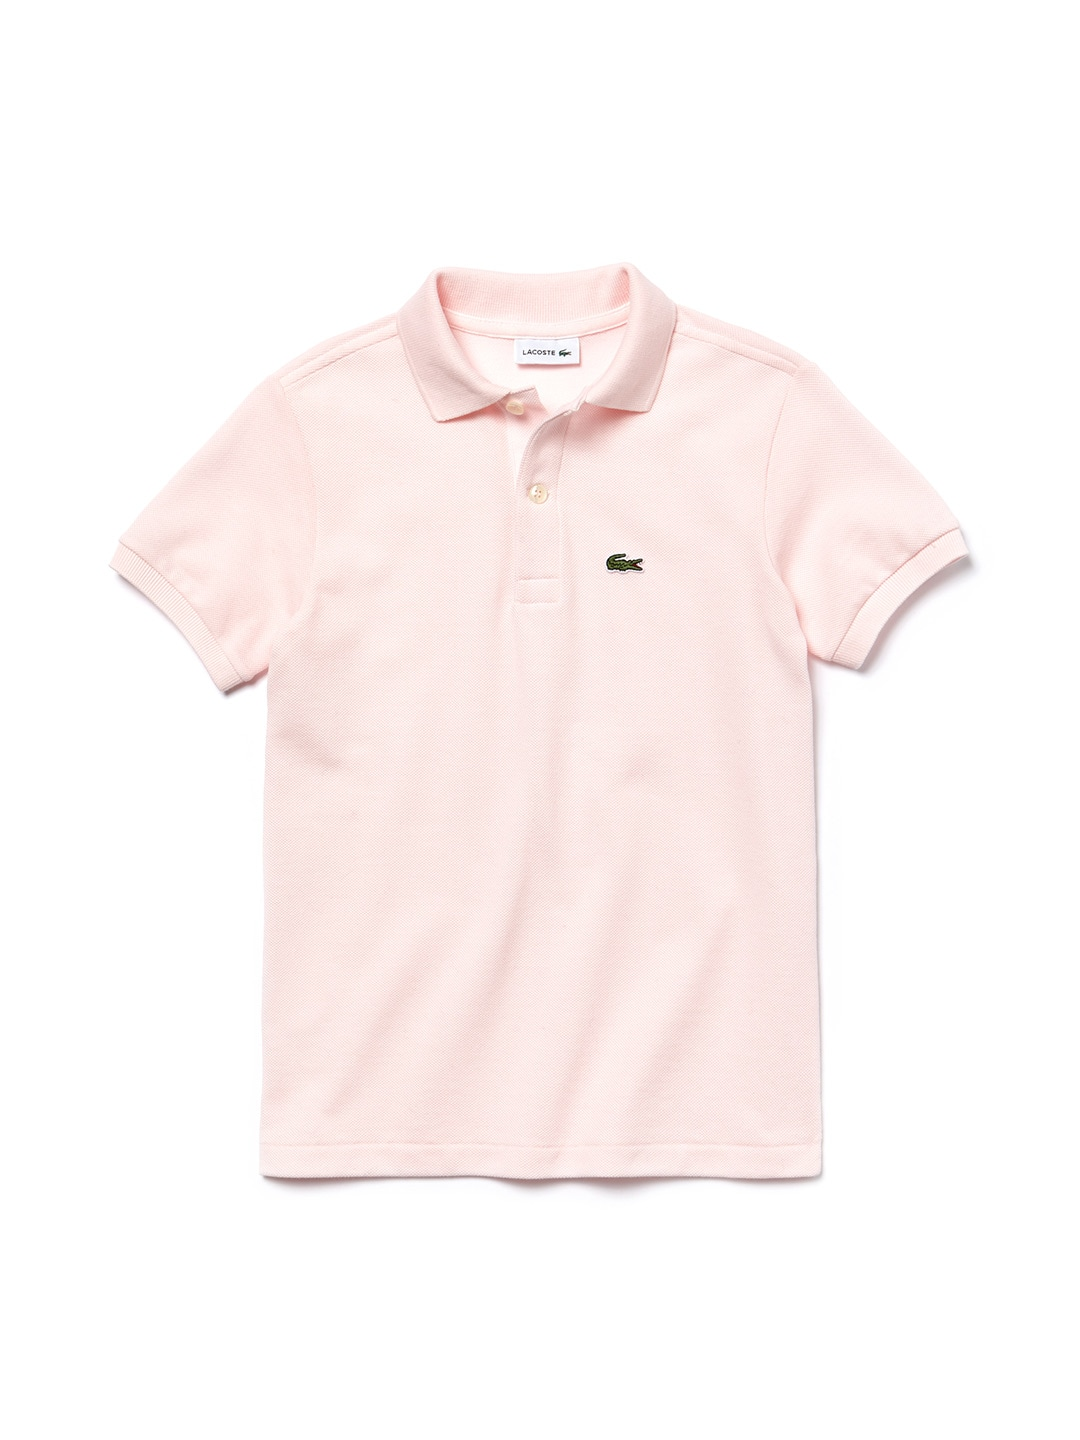 6dc4f10a19 Lacoste T-Shirts - Buy T Shirt from Lacoste Online Store